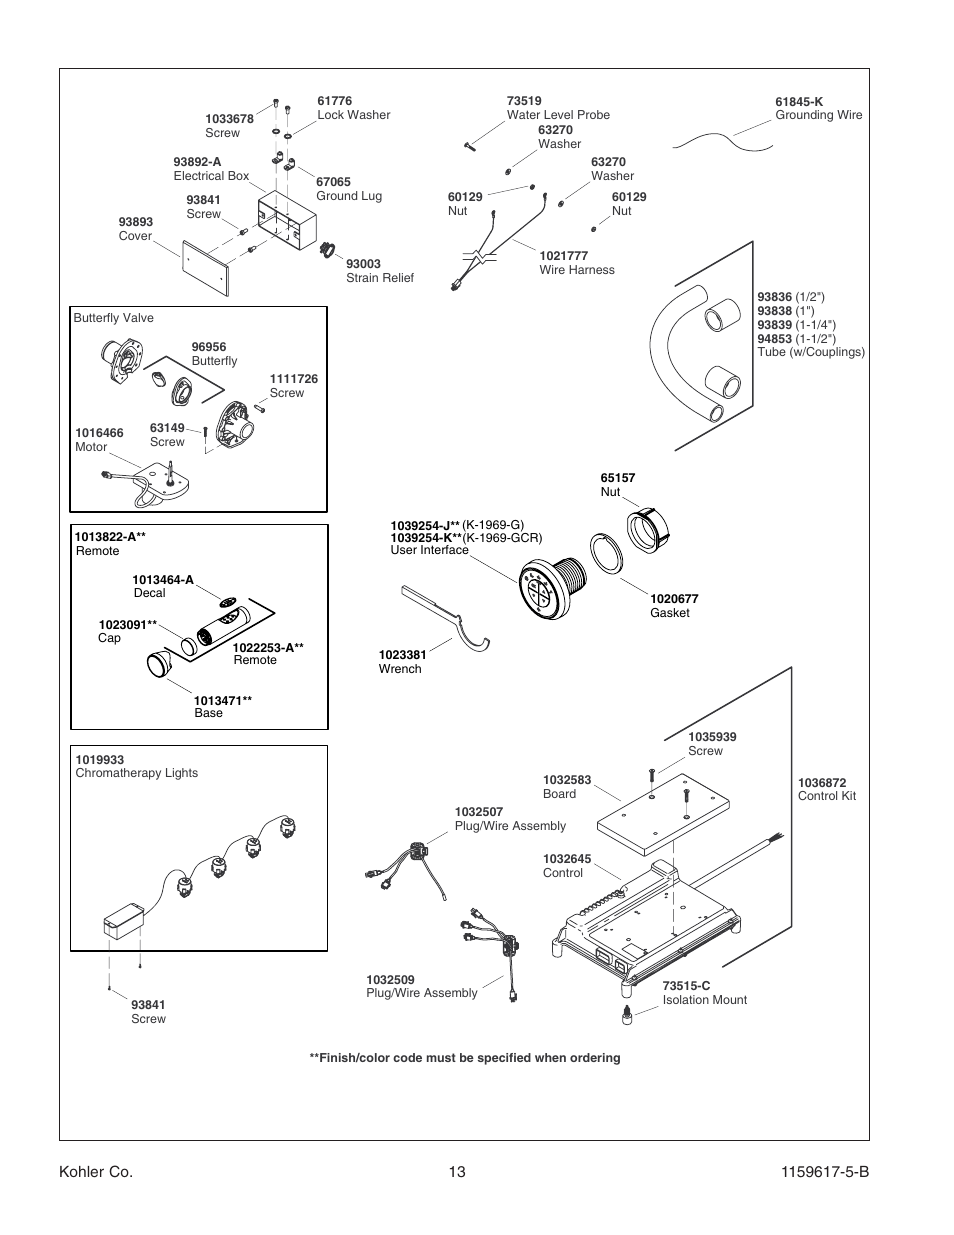 Kohler Bath With Airjets K 1969 User Manual Page 13 44 Wire Harness